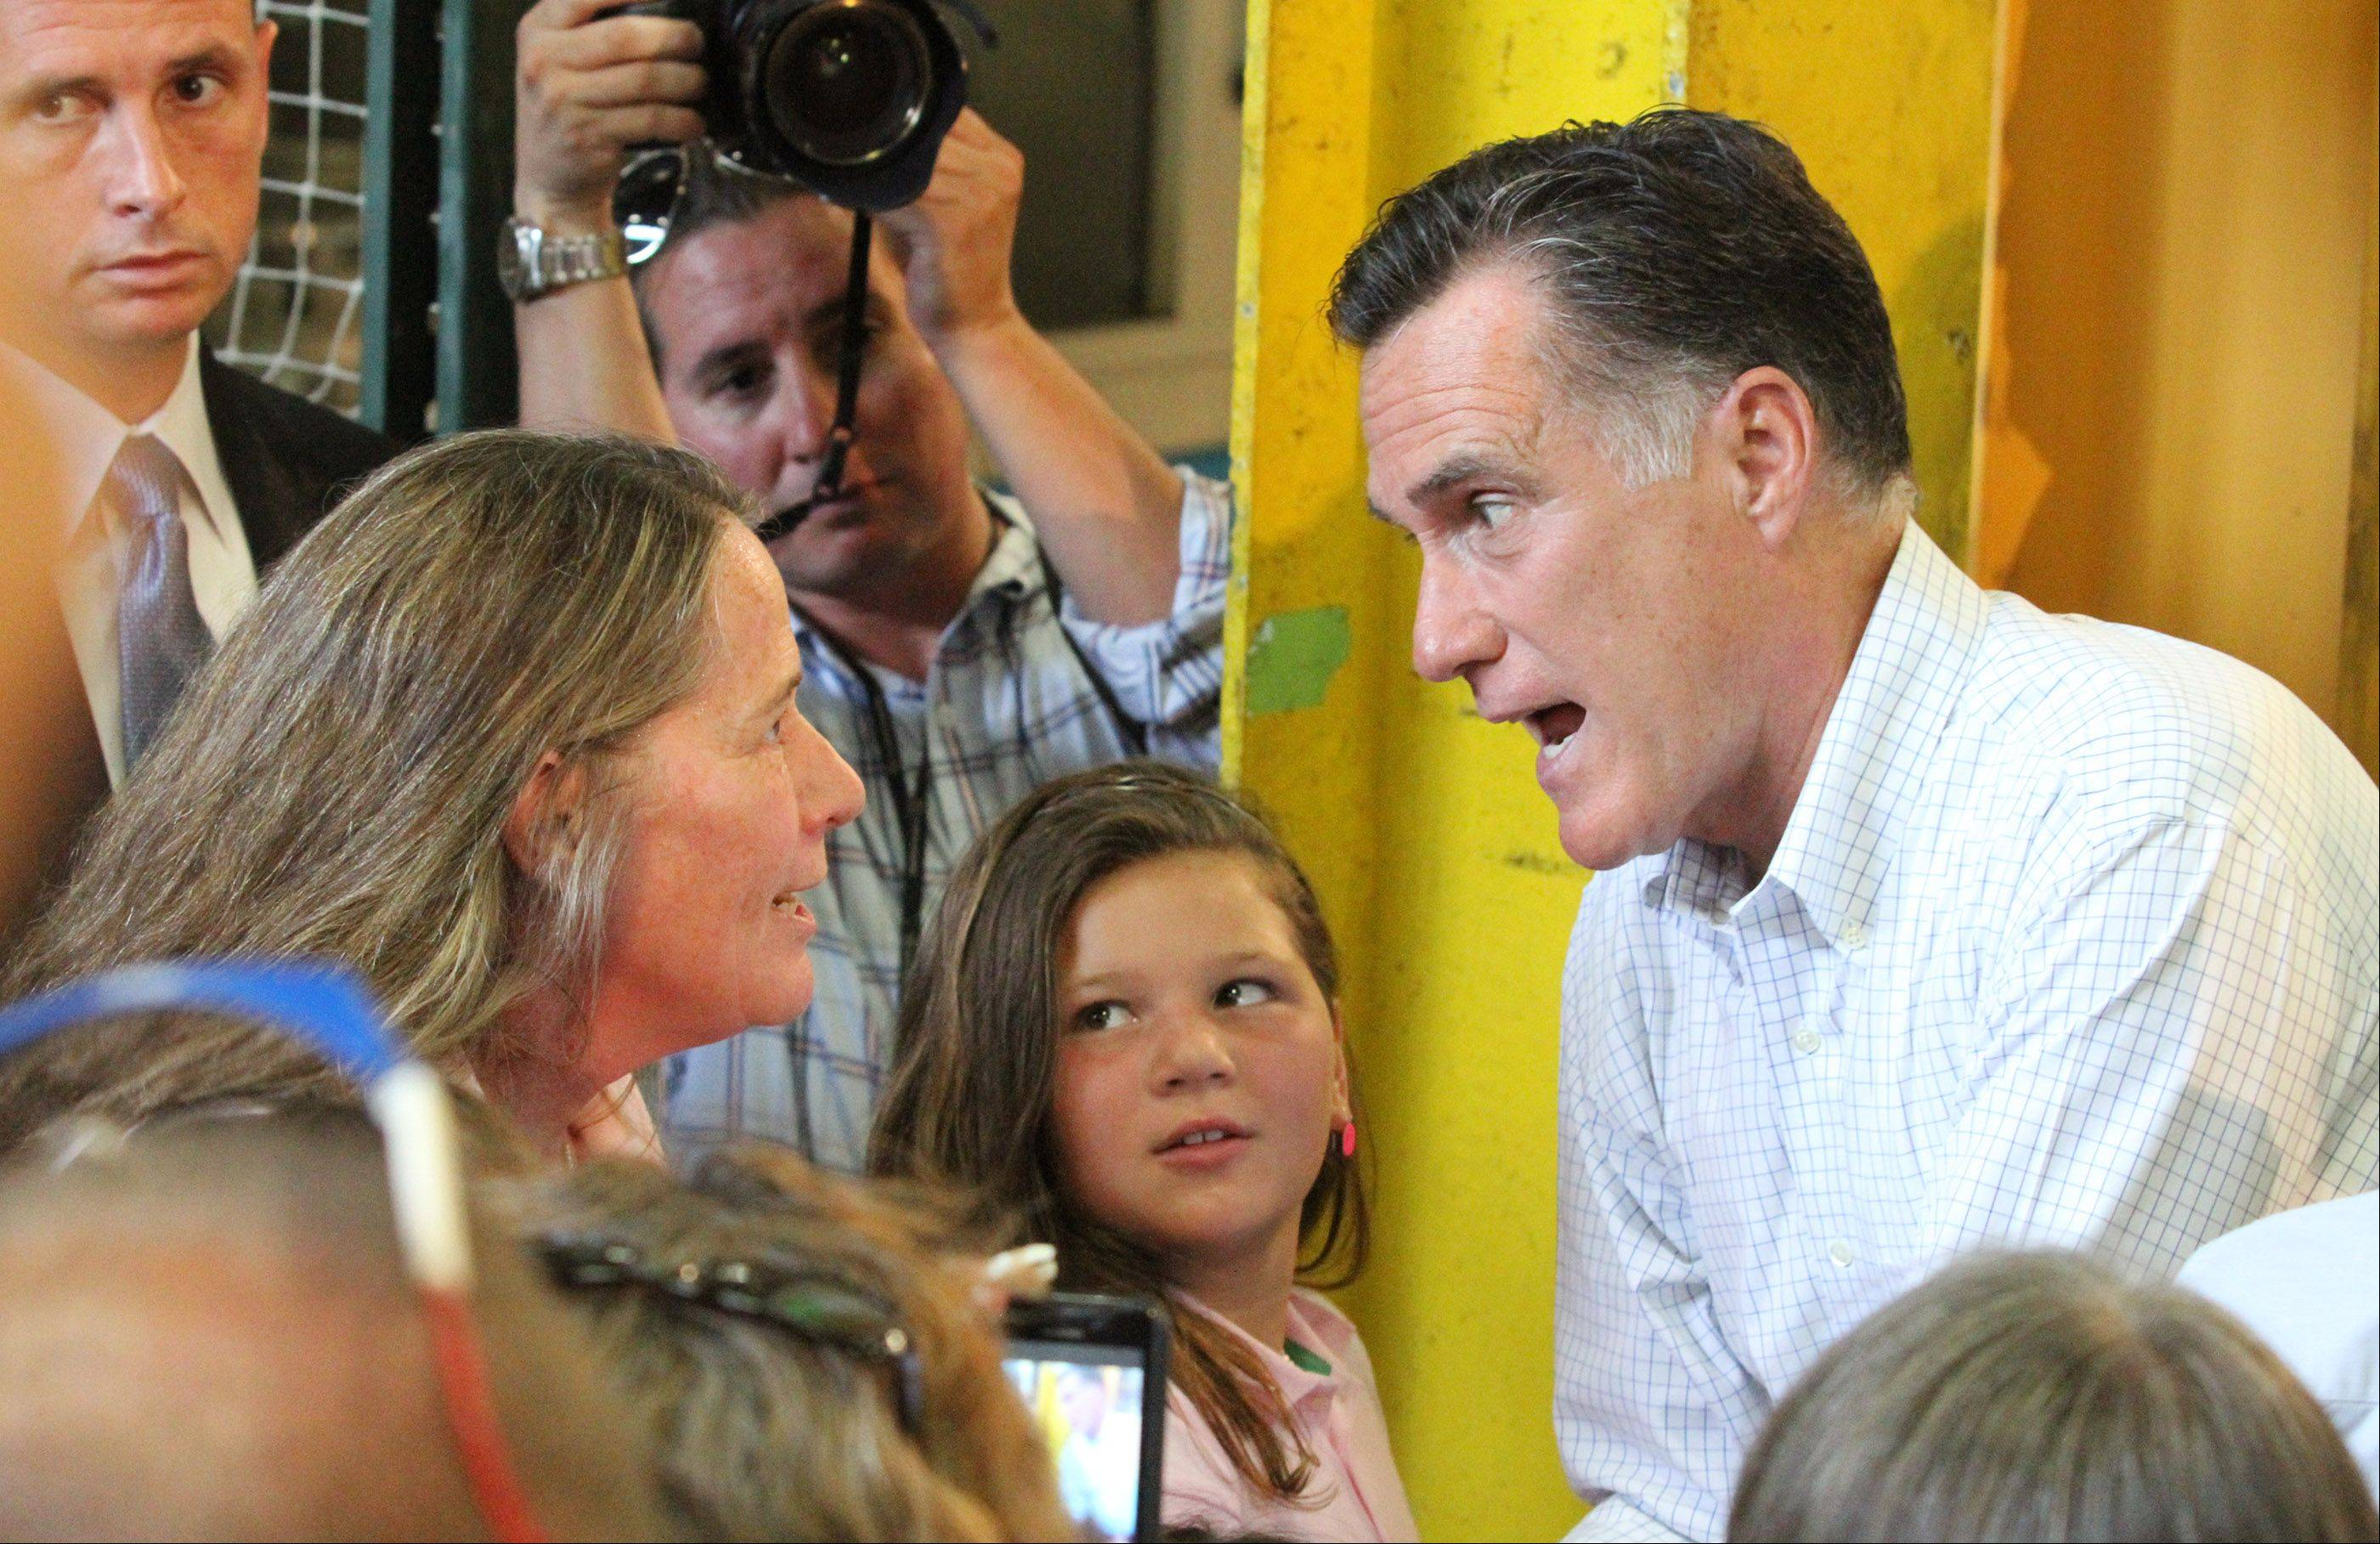 Sharon Meroni, director of Defend the Vote, of Barrington, speaks with GOP Presidential candidate Mitt Romney after a campaign speech at Acme Industries in Elk Grove Village in August.